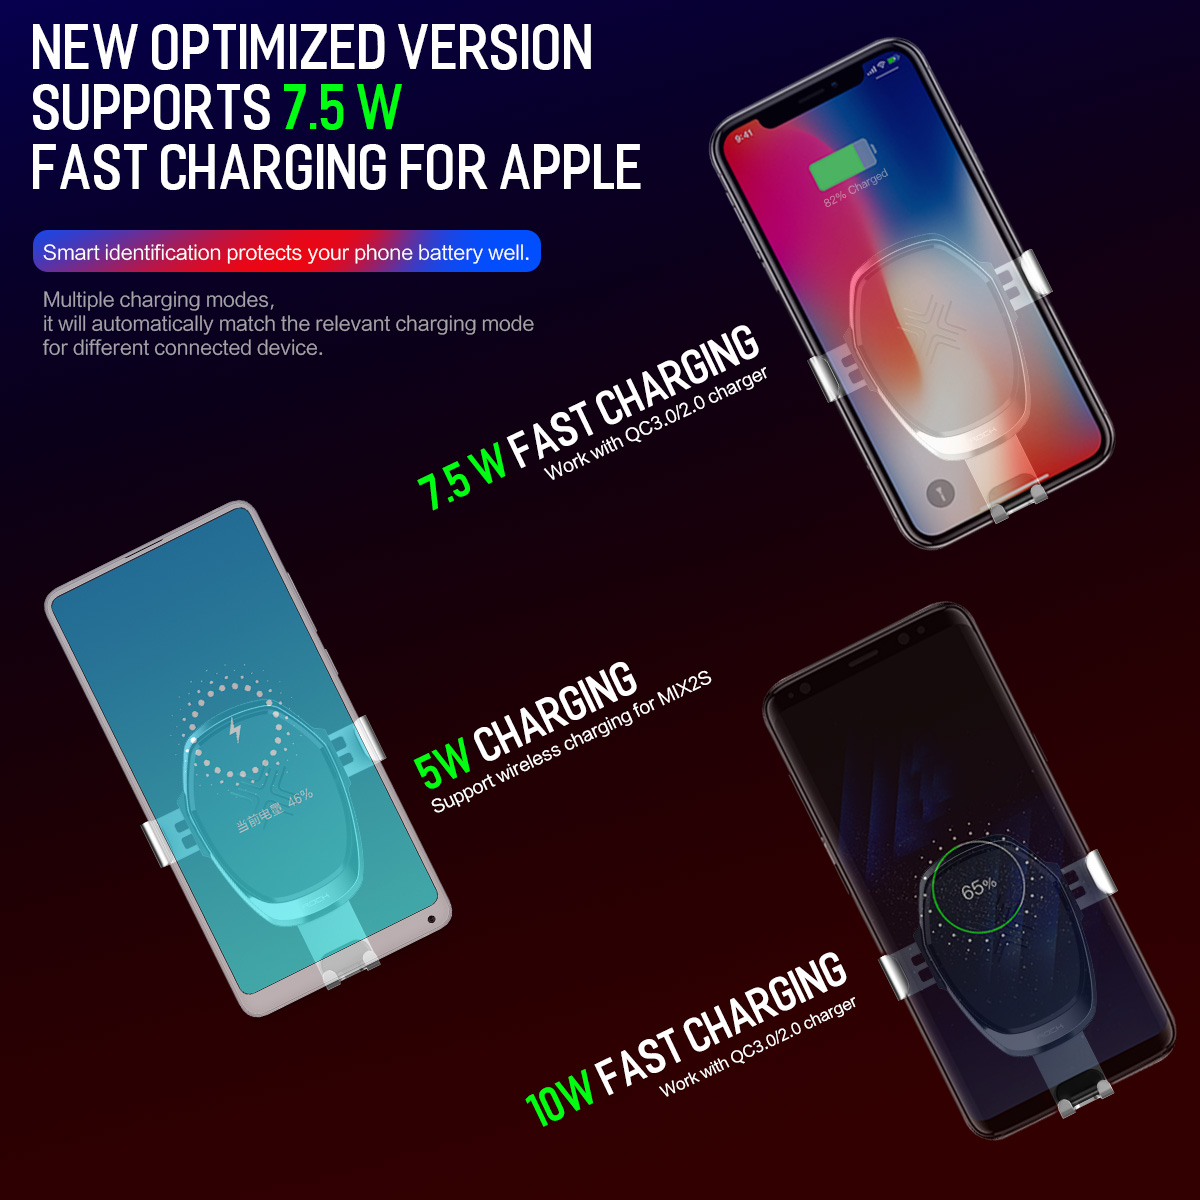 HTB12mi6KaSWBuNjSsrbq6y0mVXaR - 10W QI Wireless Car Charger Gravity Holder , ROCK for iPhone X 8 Plus Samsung Galaxy S8 S7 Note 8 Quick Charge Charging Stand